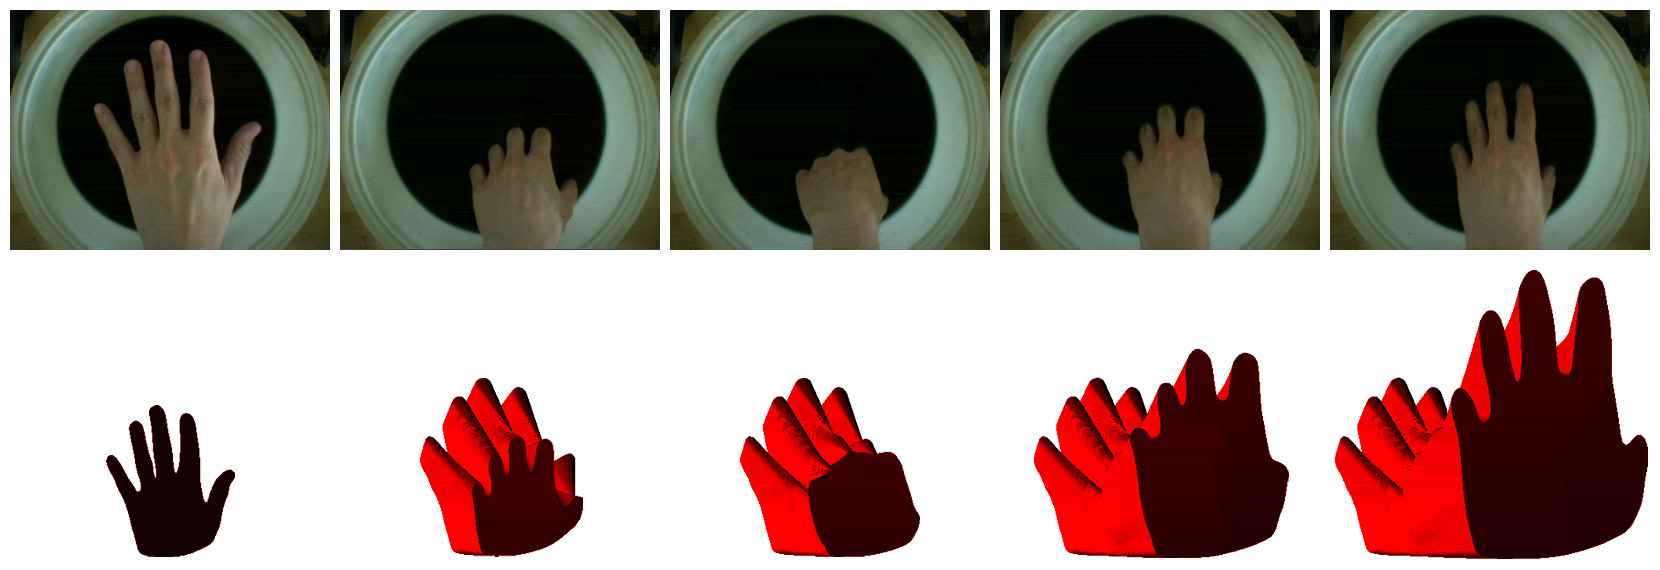 Hand in Water Sequence